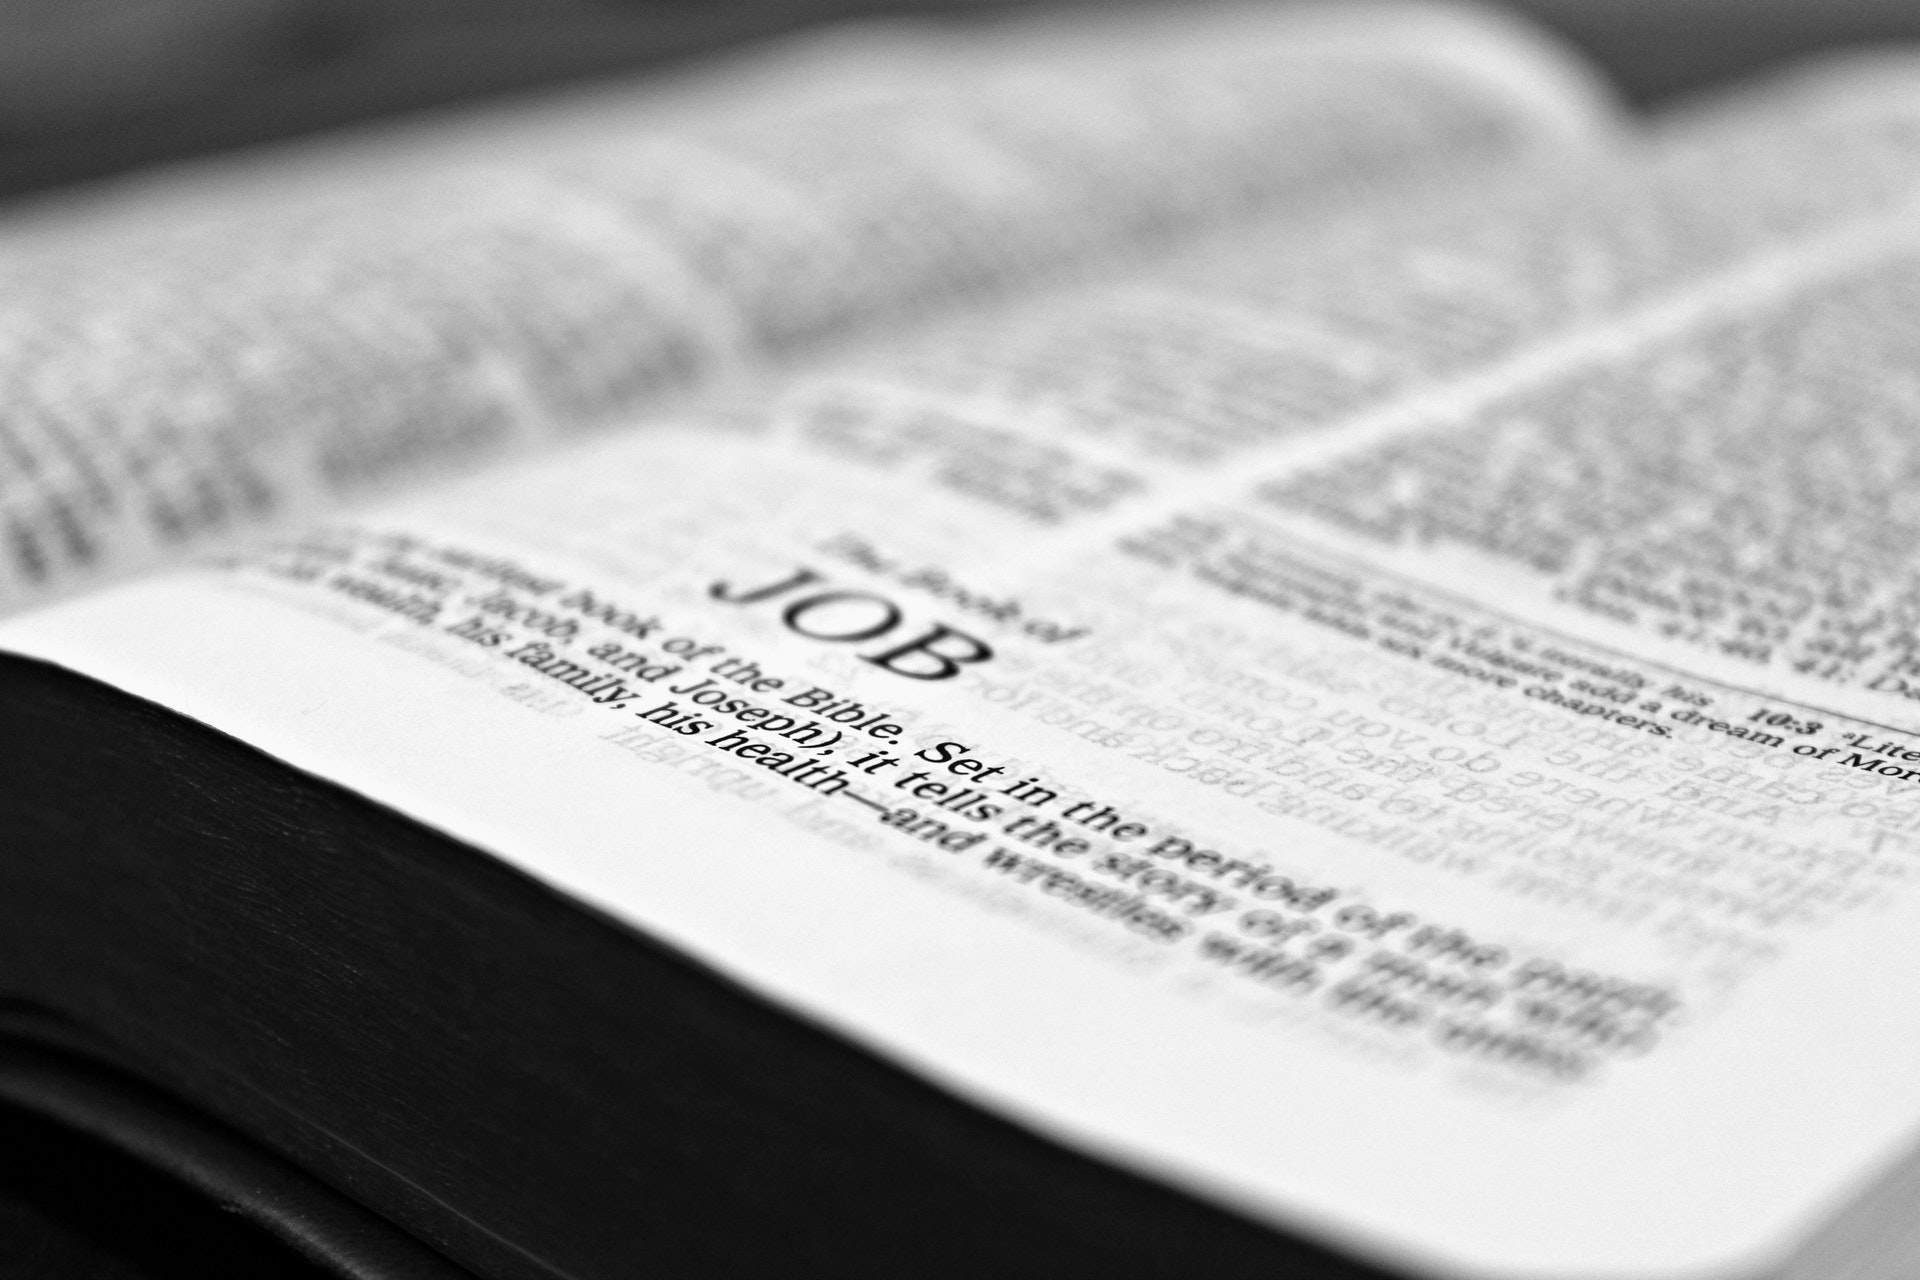 My Top 10 List of Bible Events I'd Love to See